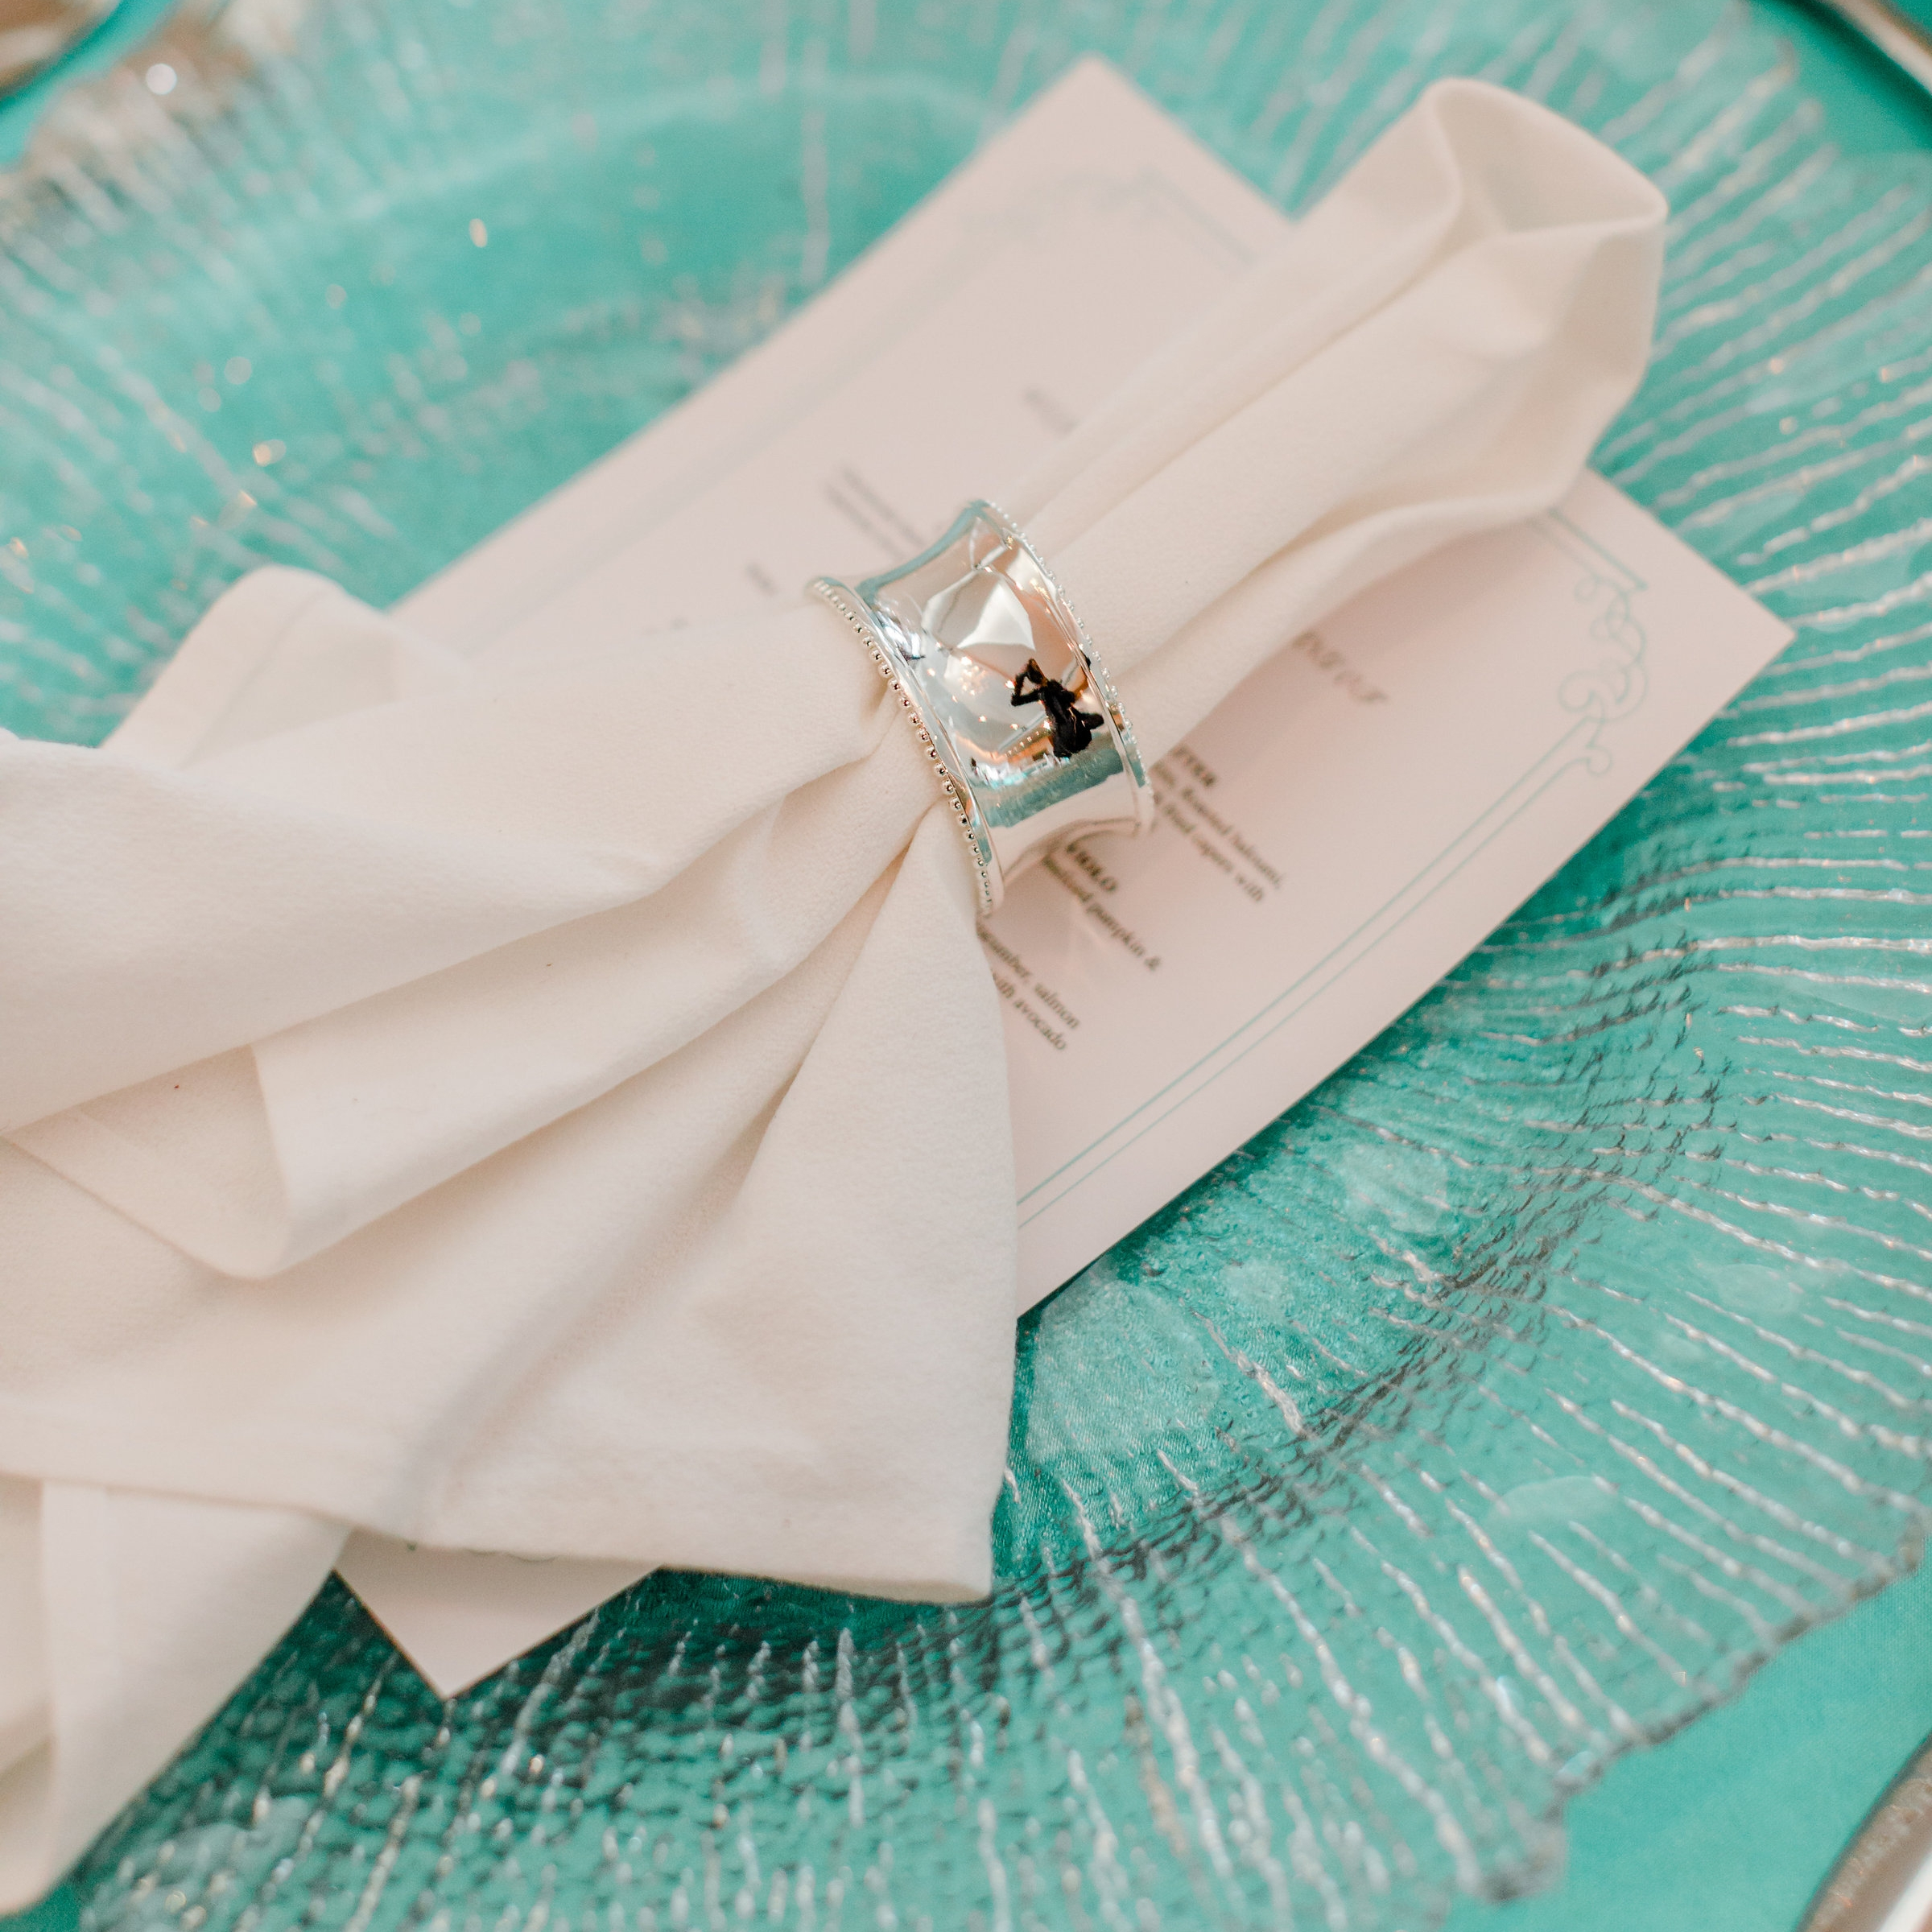 silver_napkin_ring_sydney_wedding_reception_decor_.jpg